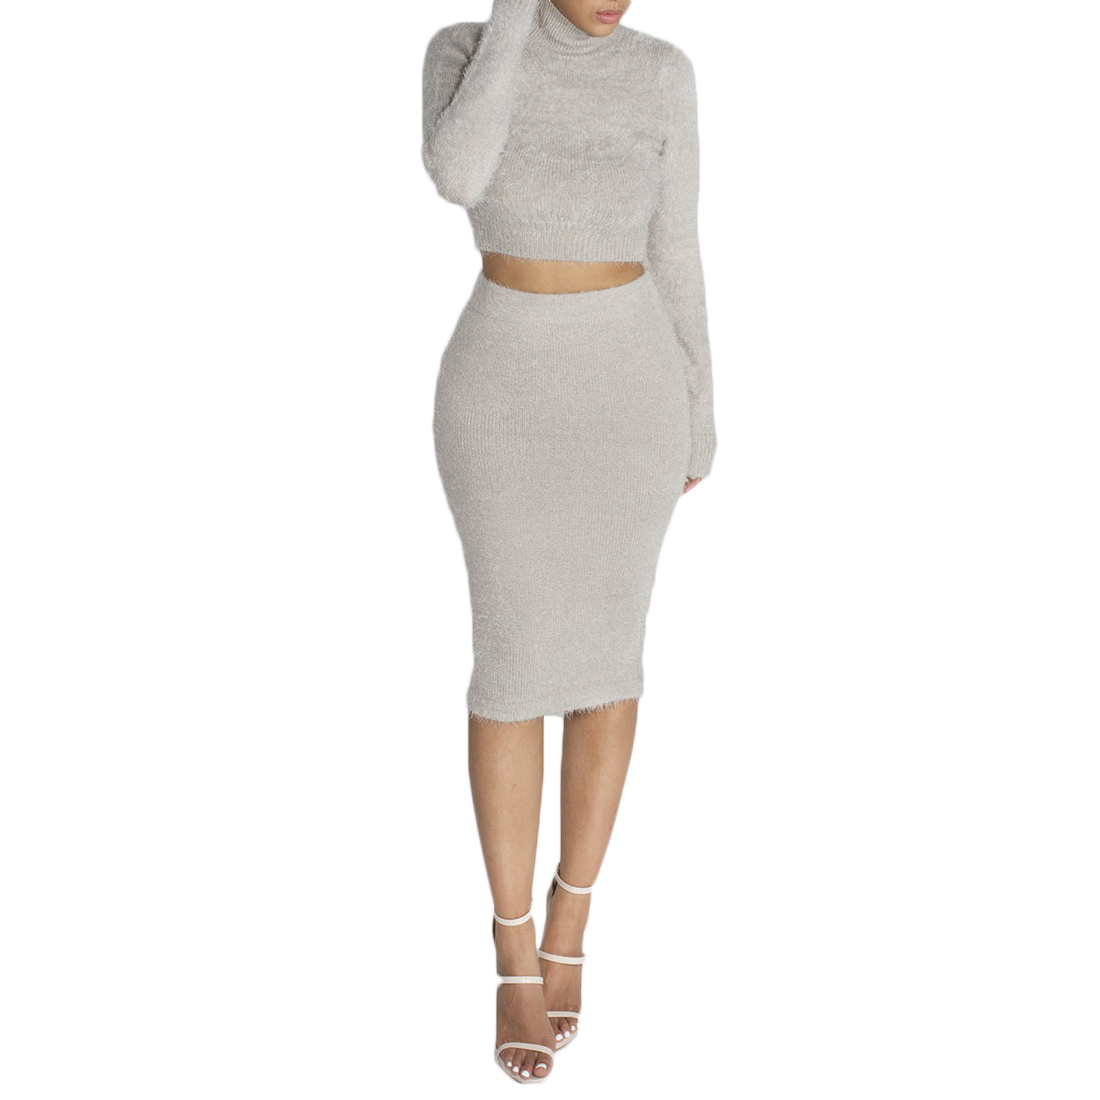 Two Piece Set Women's Sexy Sweater Suits 2 Pcs Pink Long Sleeve Turtleneck Pullover Short Sweater And Mid-Calf Skirt Party Dress